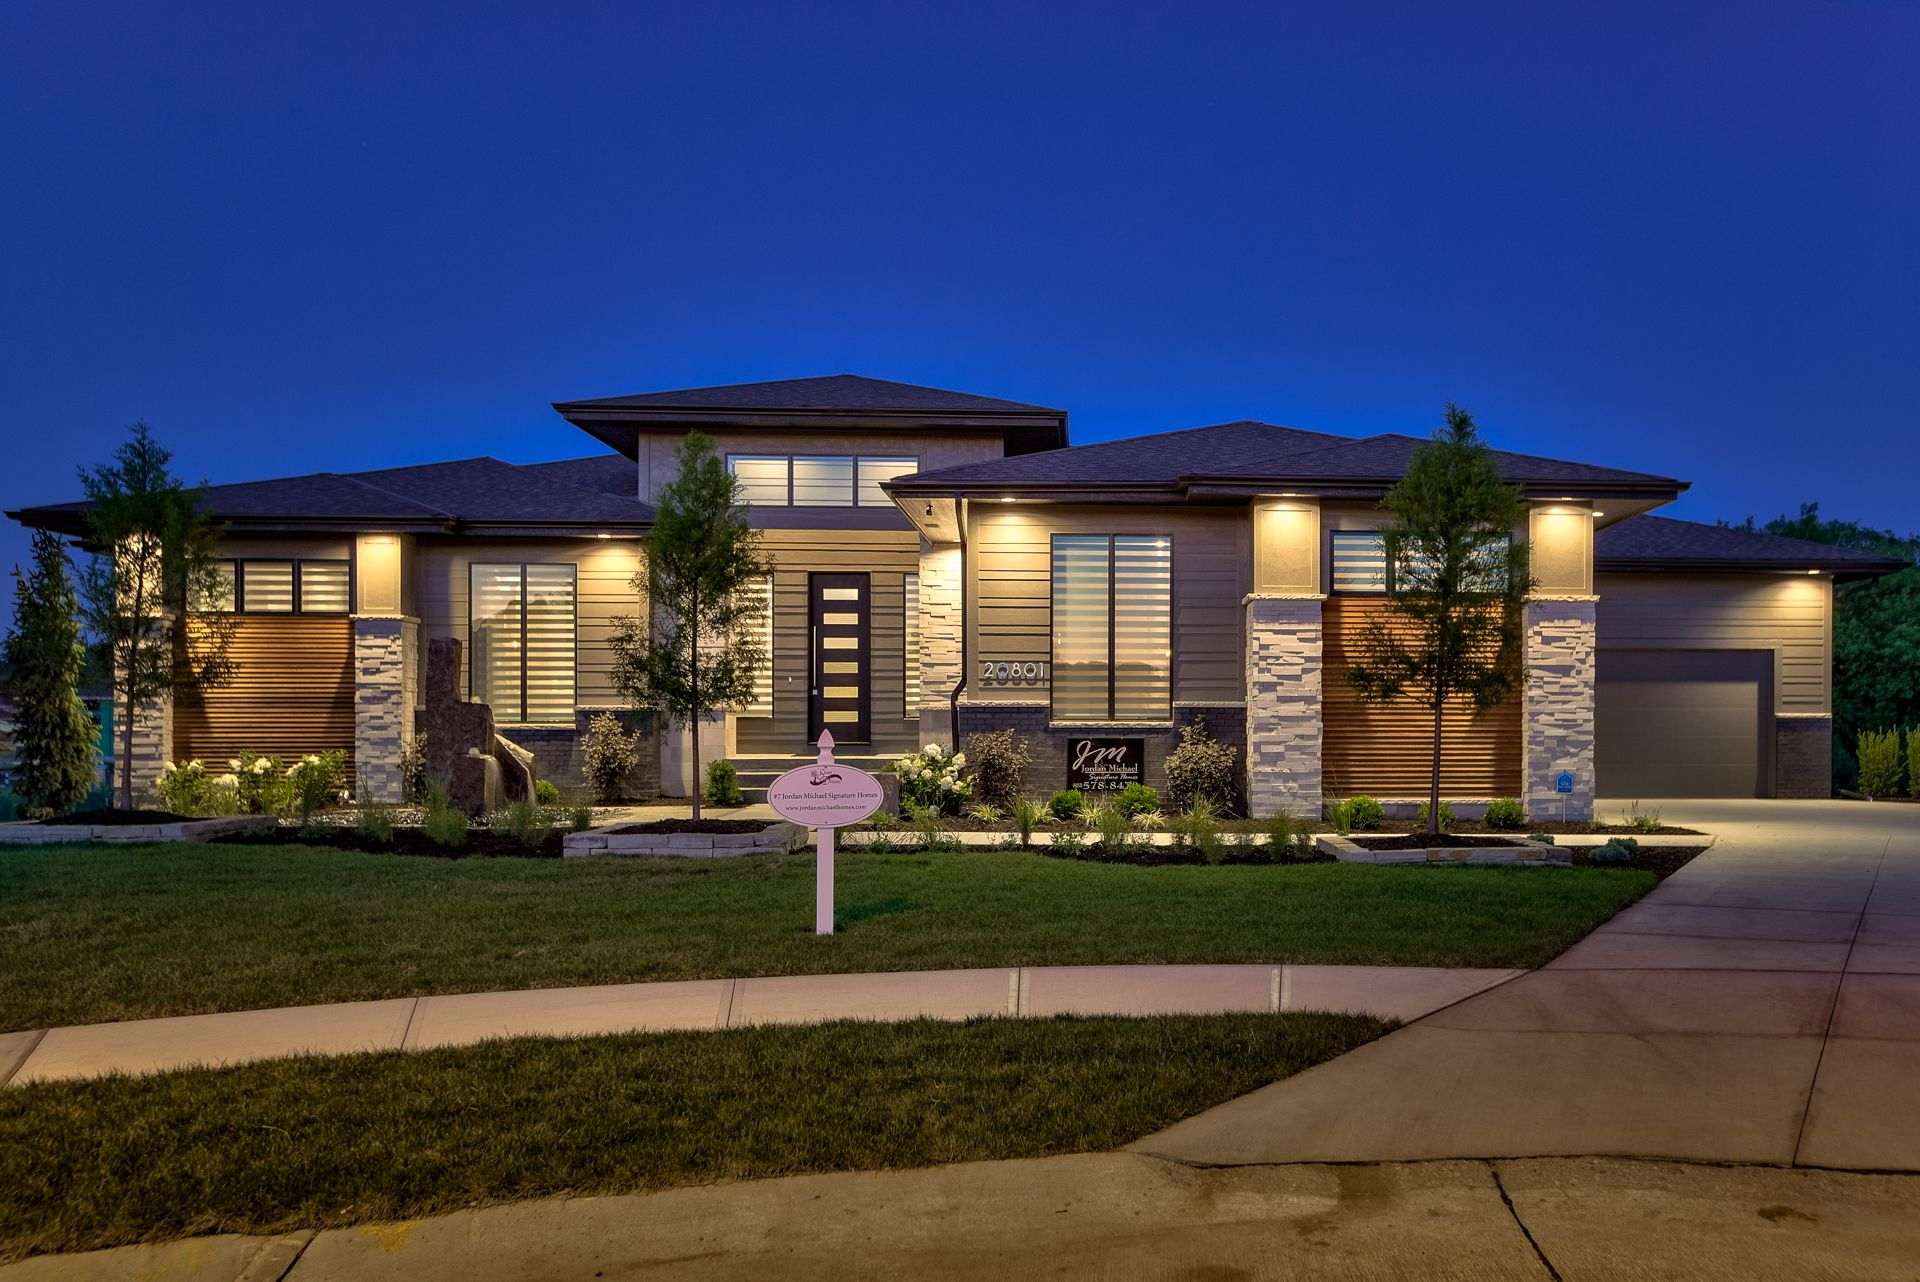 Modern Ranch Plan Designed By Advanced House Plans, Built By Jordan Michael  Signature Homes In